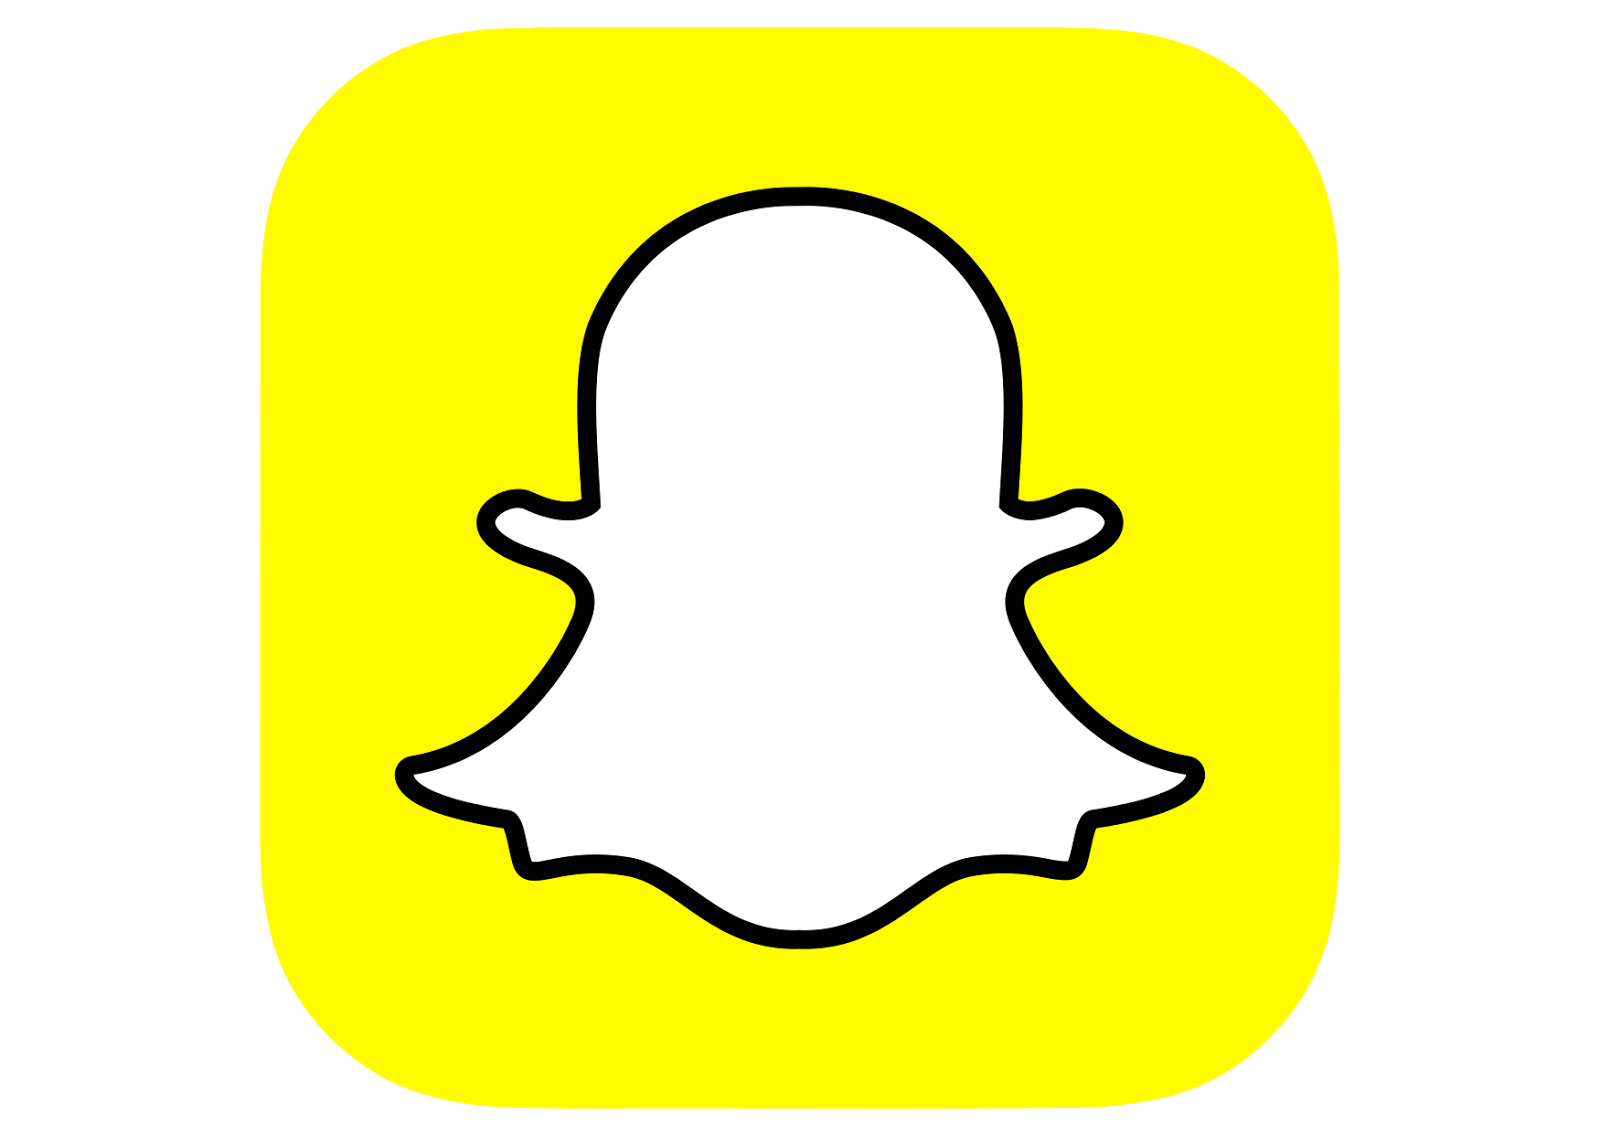 Clipart images for snapchat graphic freeuse Free Snapchat Cliparts, Download Free Clip Art, Free Clip Art on ... graphic freeuse